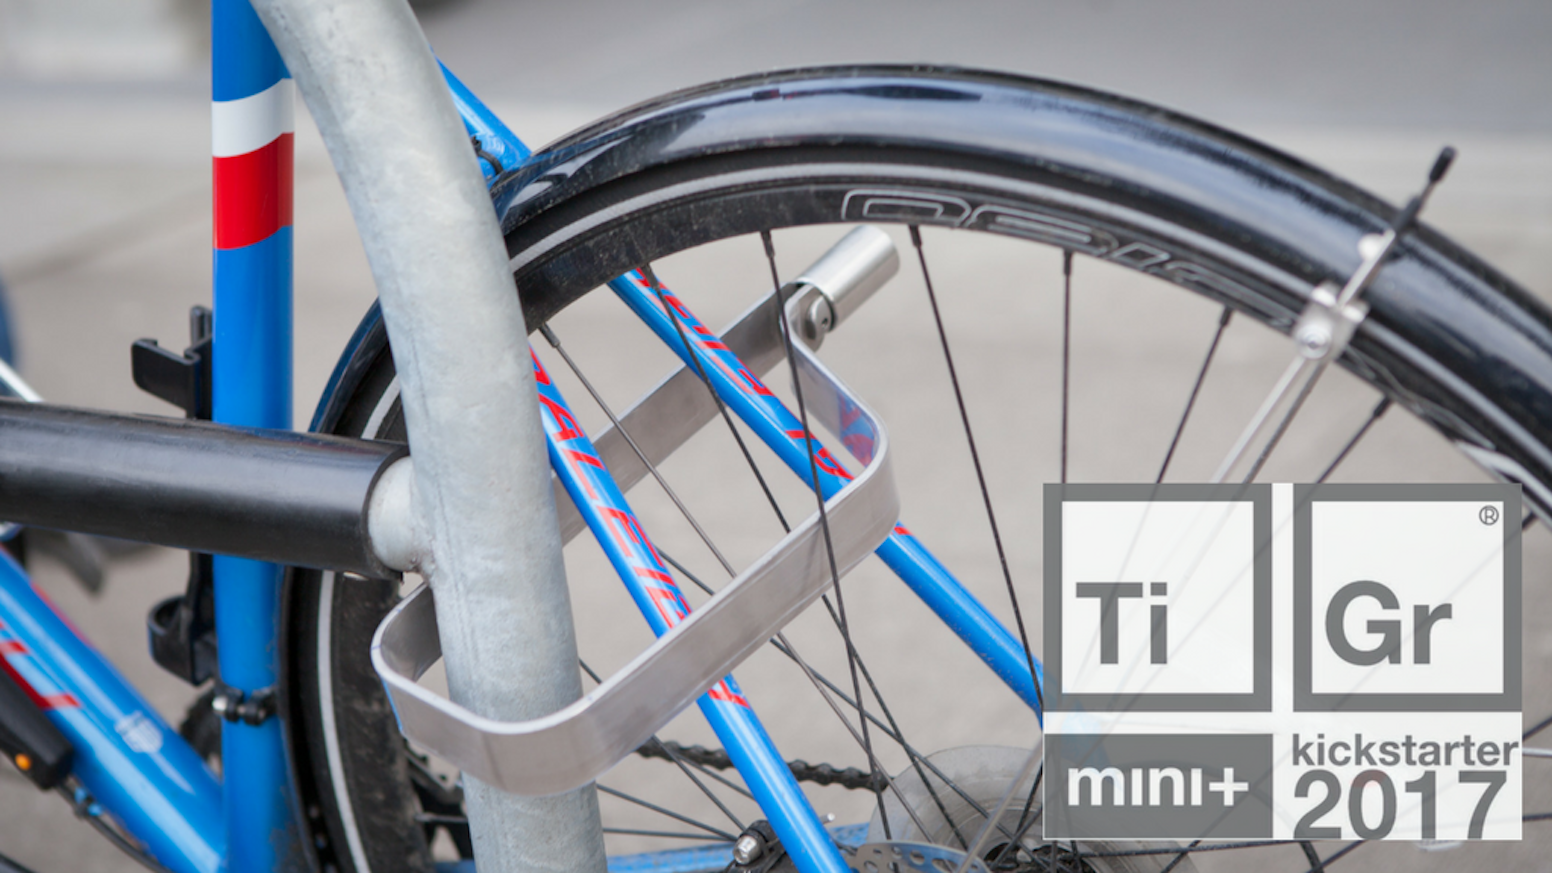 The TiGr mini+ takes strong and lightweight security to the next level with more locking area. The latest in elegant bicycle security.